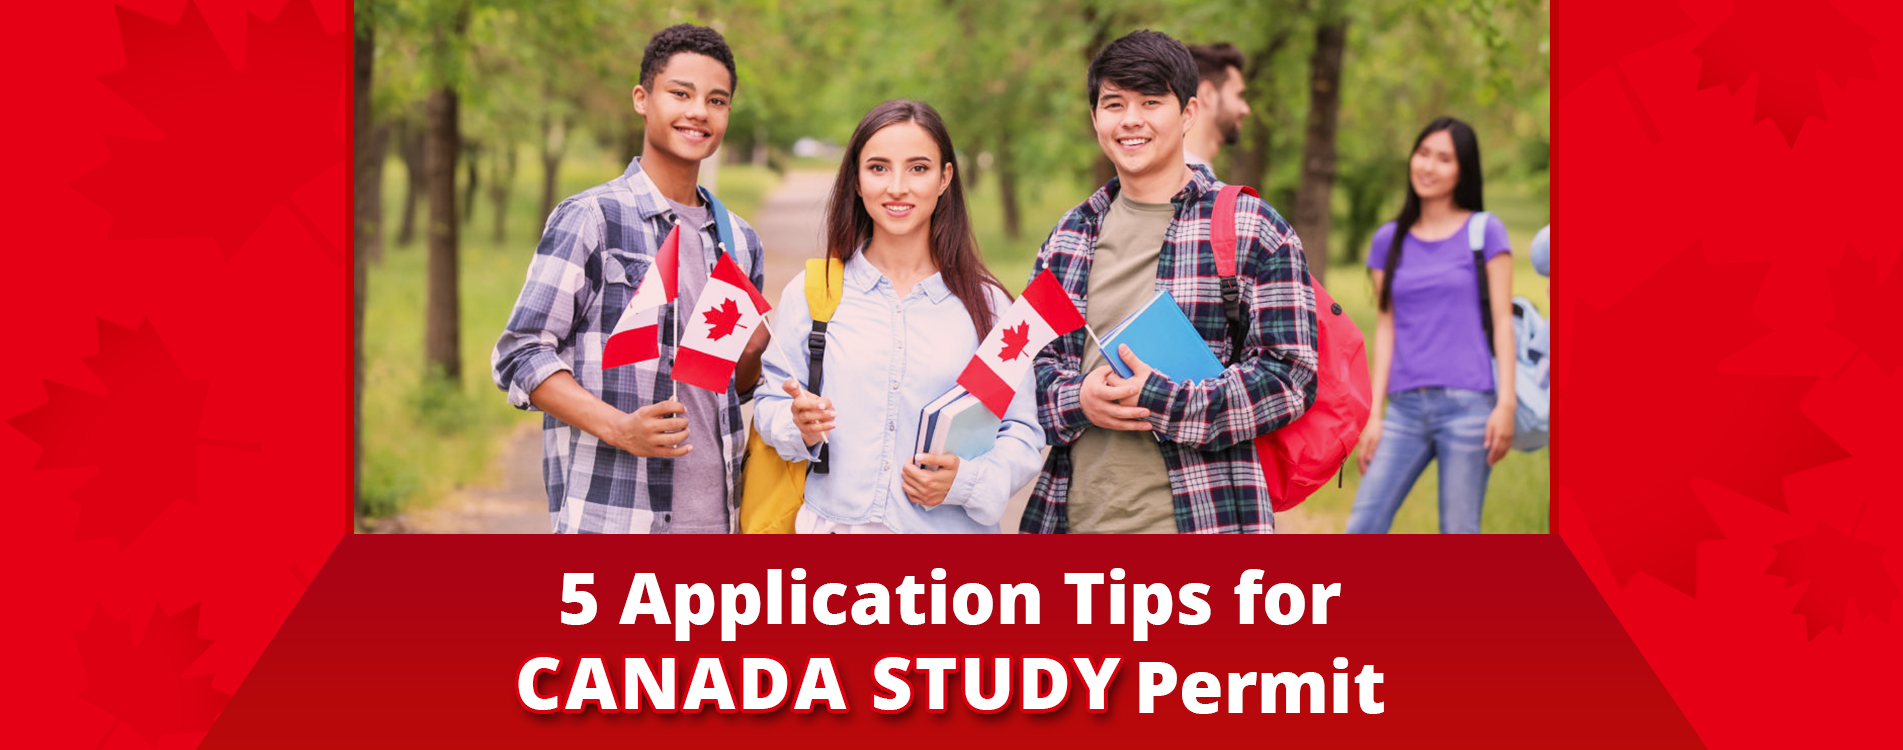 5 Application Tips for Canada Study Permit